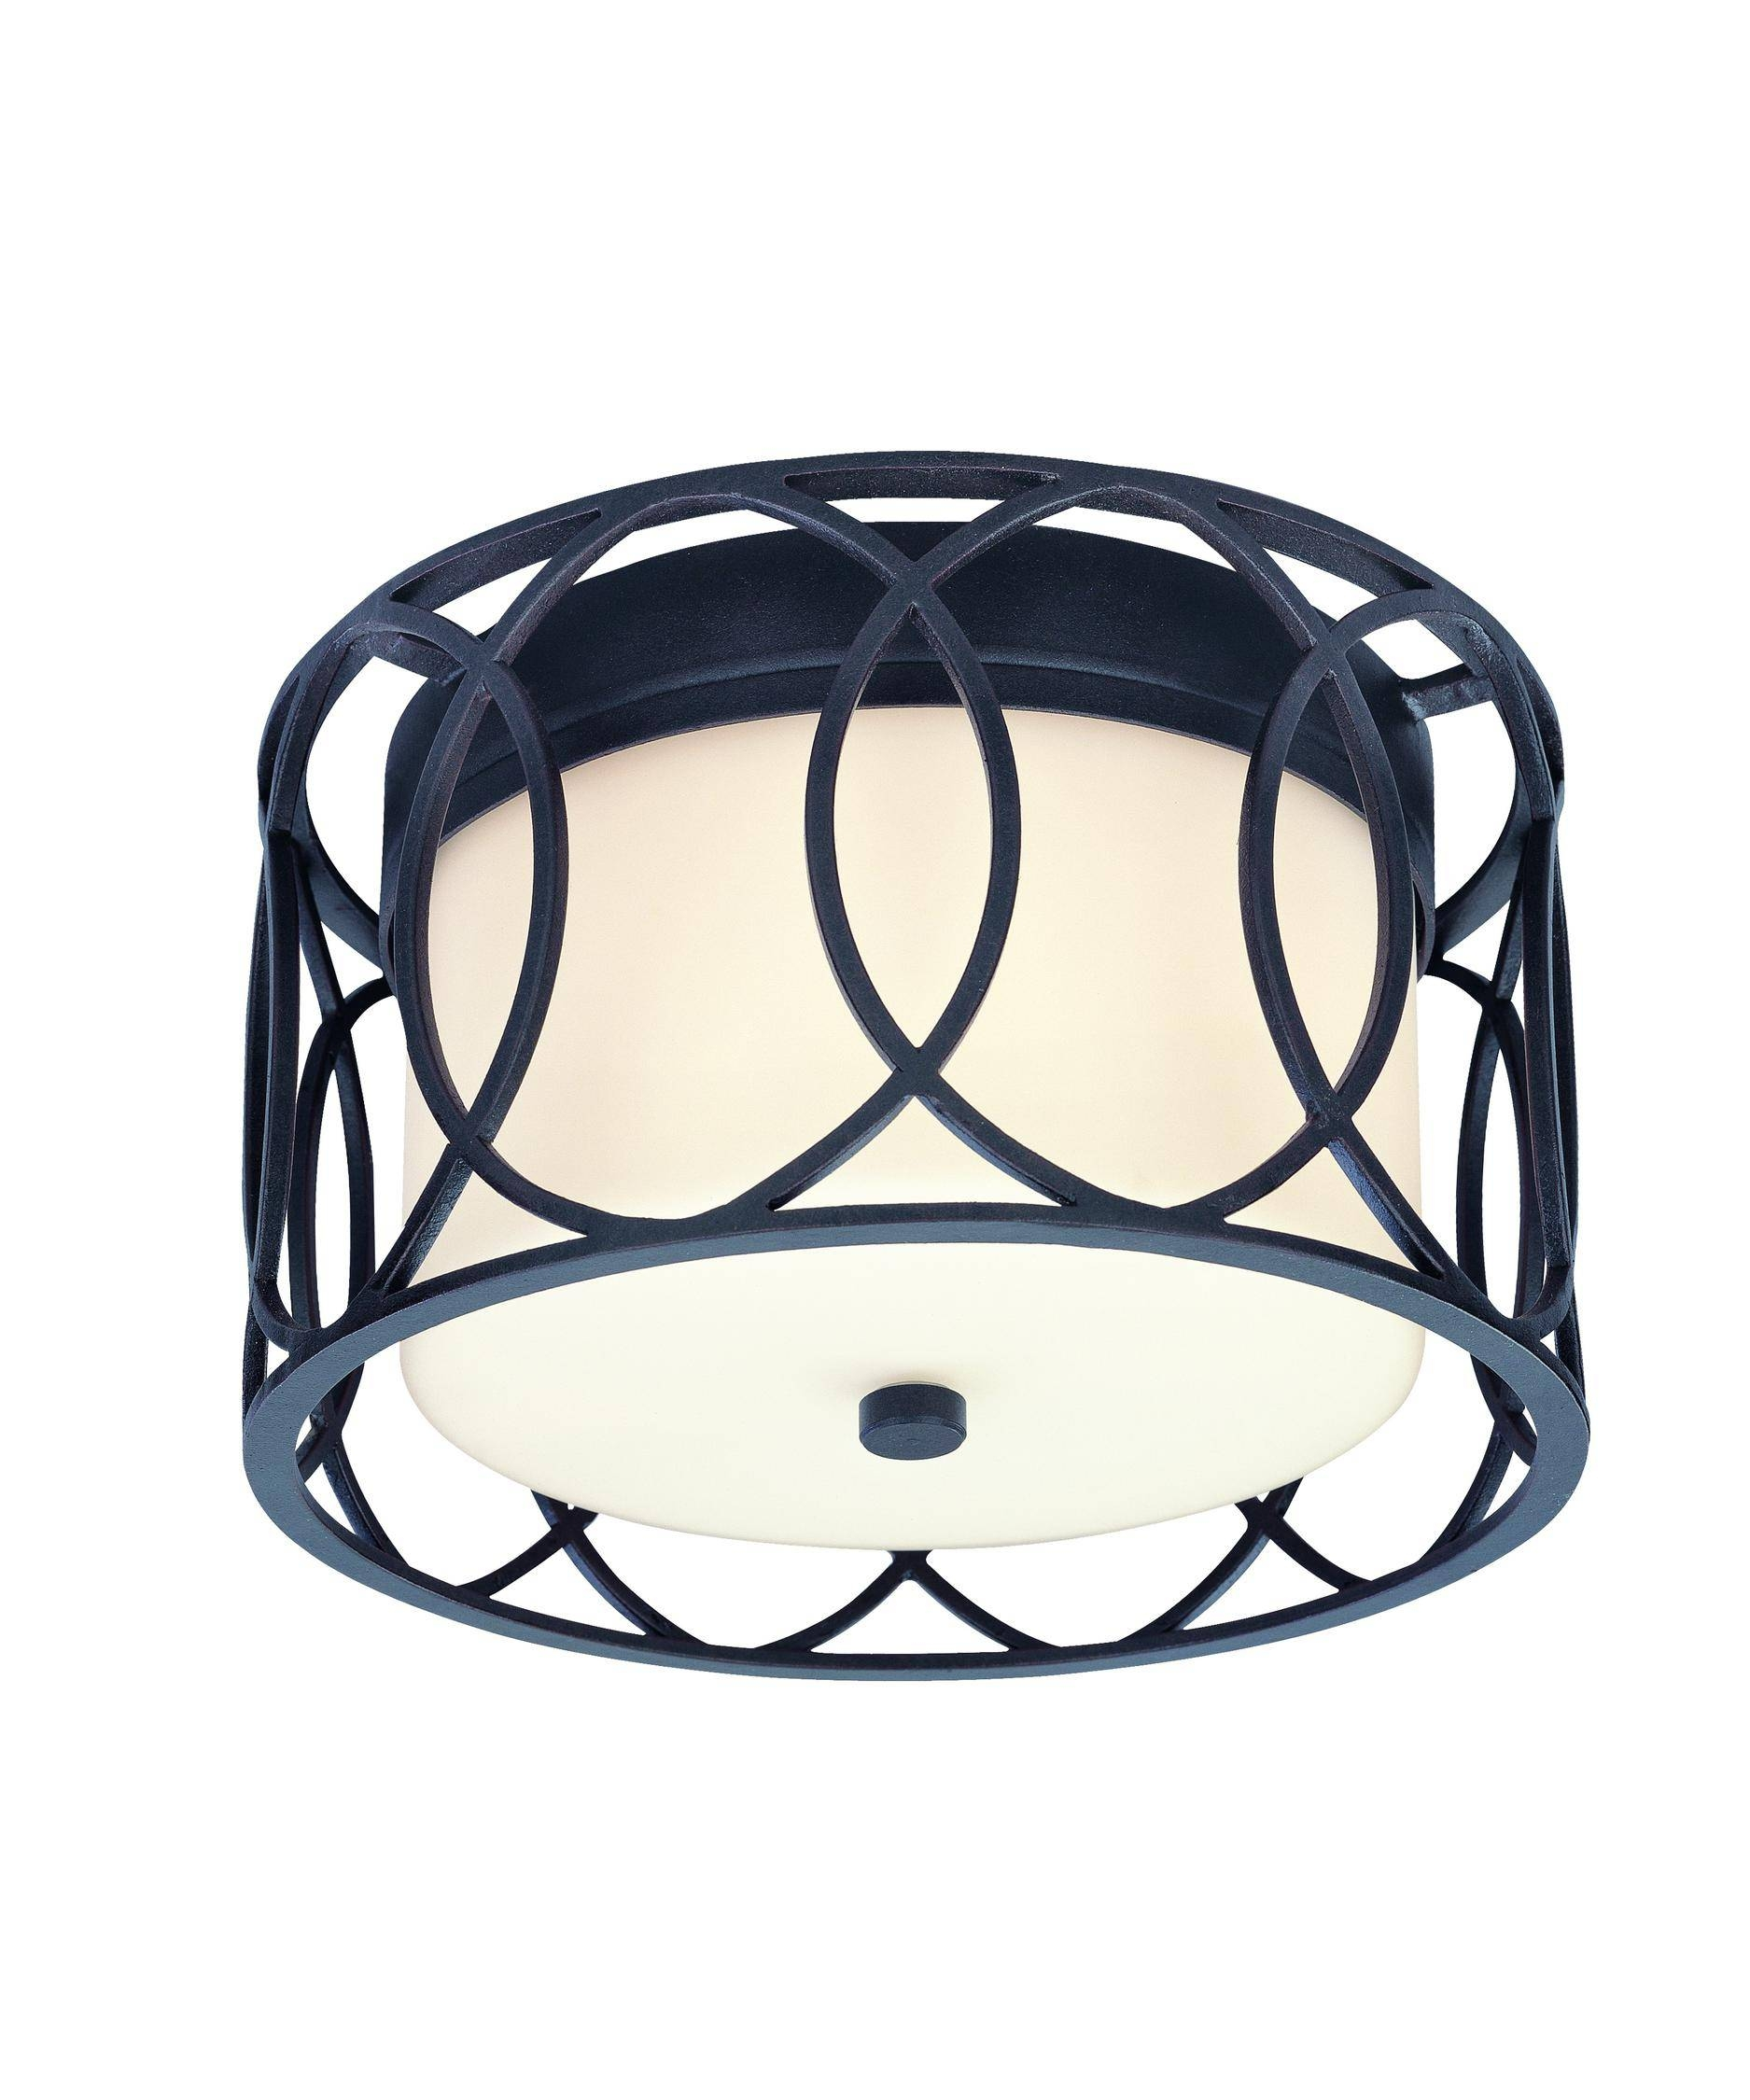 Troy Lighting C1280 Sausalito 12 Inch Wide Flush Mount | Capitol Pertaining To Sausalito Troy Lighting (View 3 of 15)